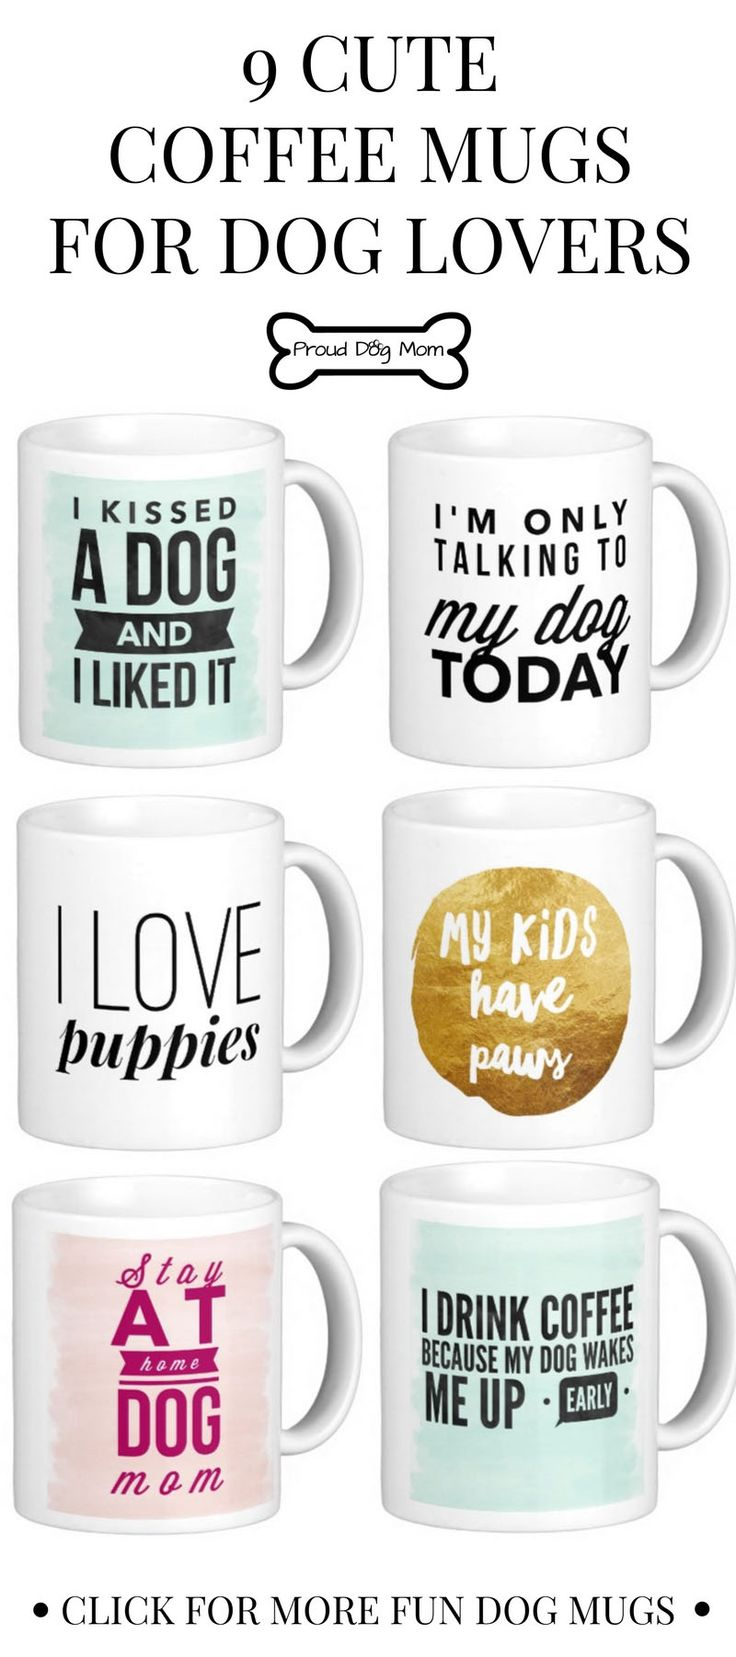 9 Cute Coffee Mugs For Dog Lovers | Gifts For Dog Lovers |